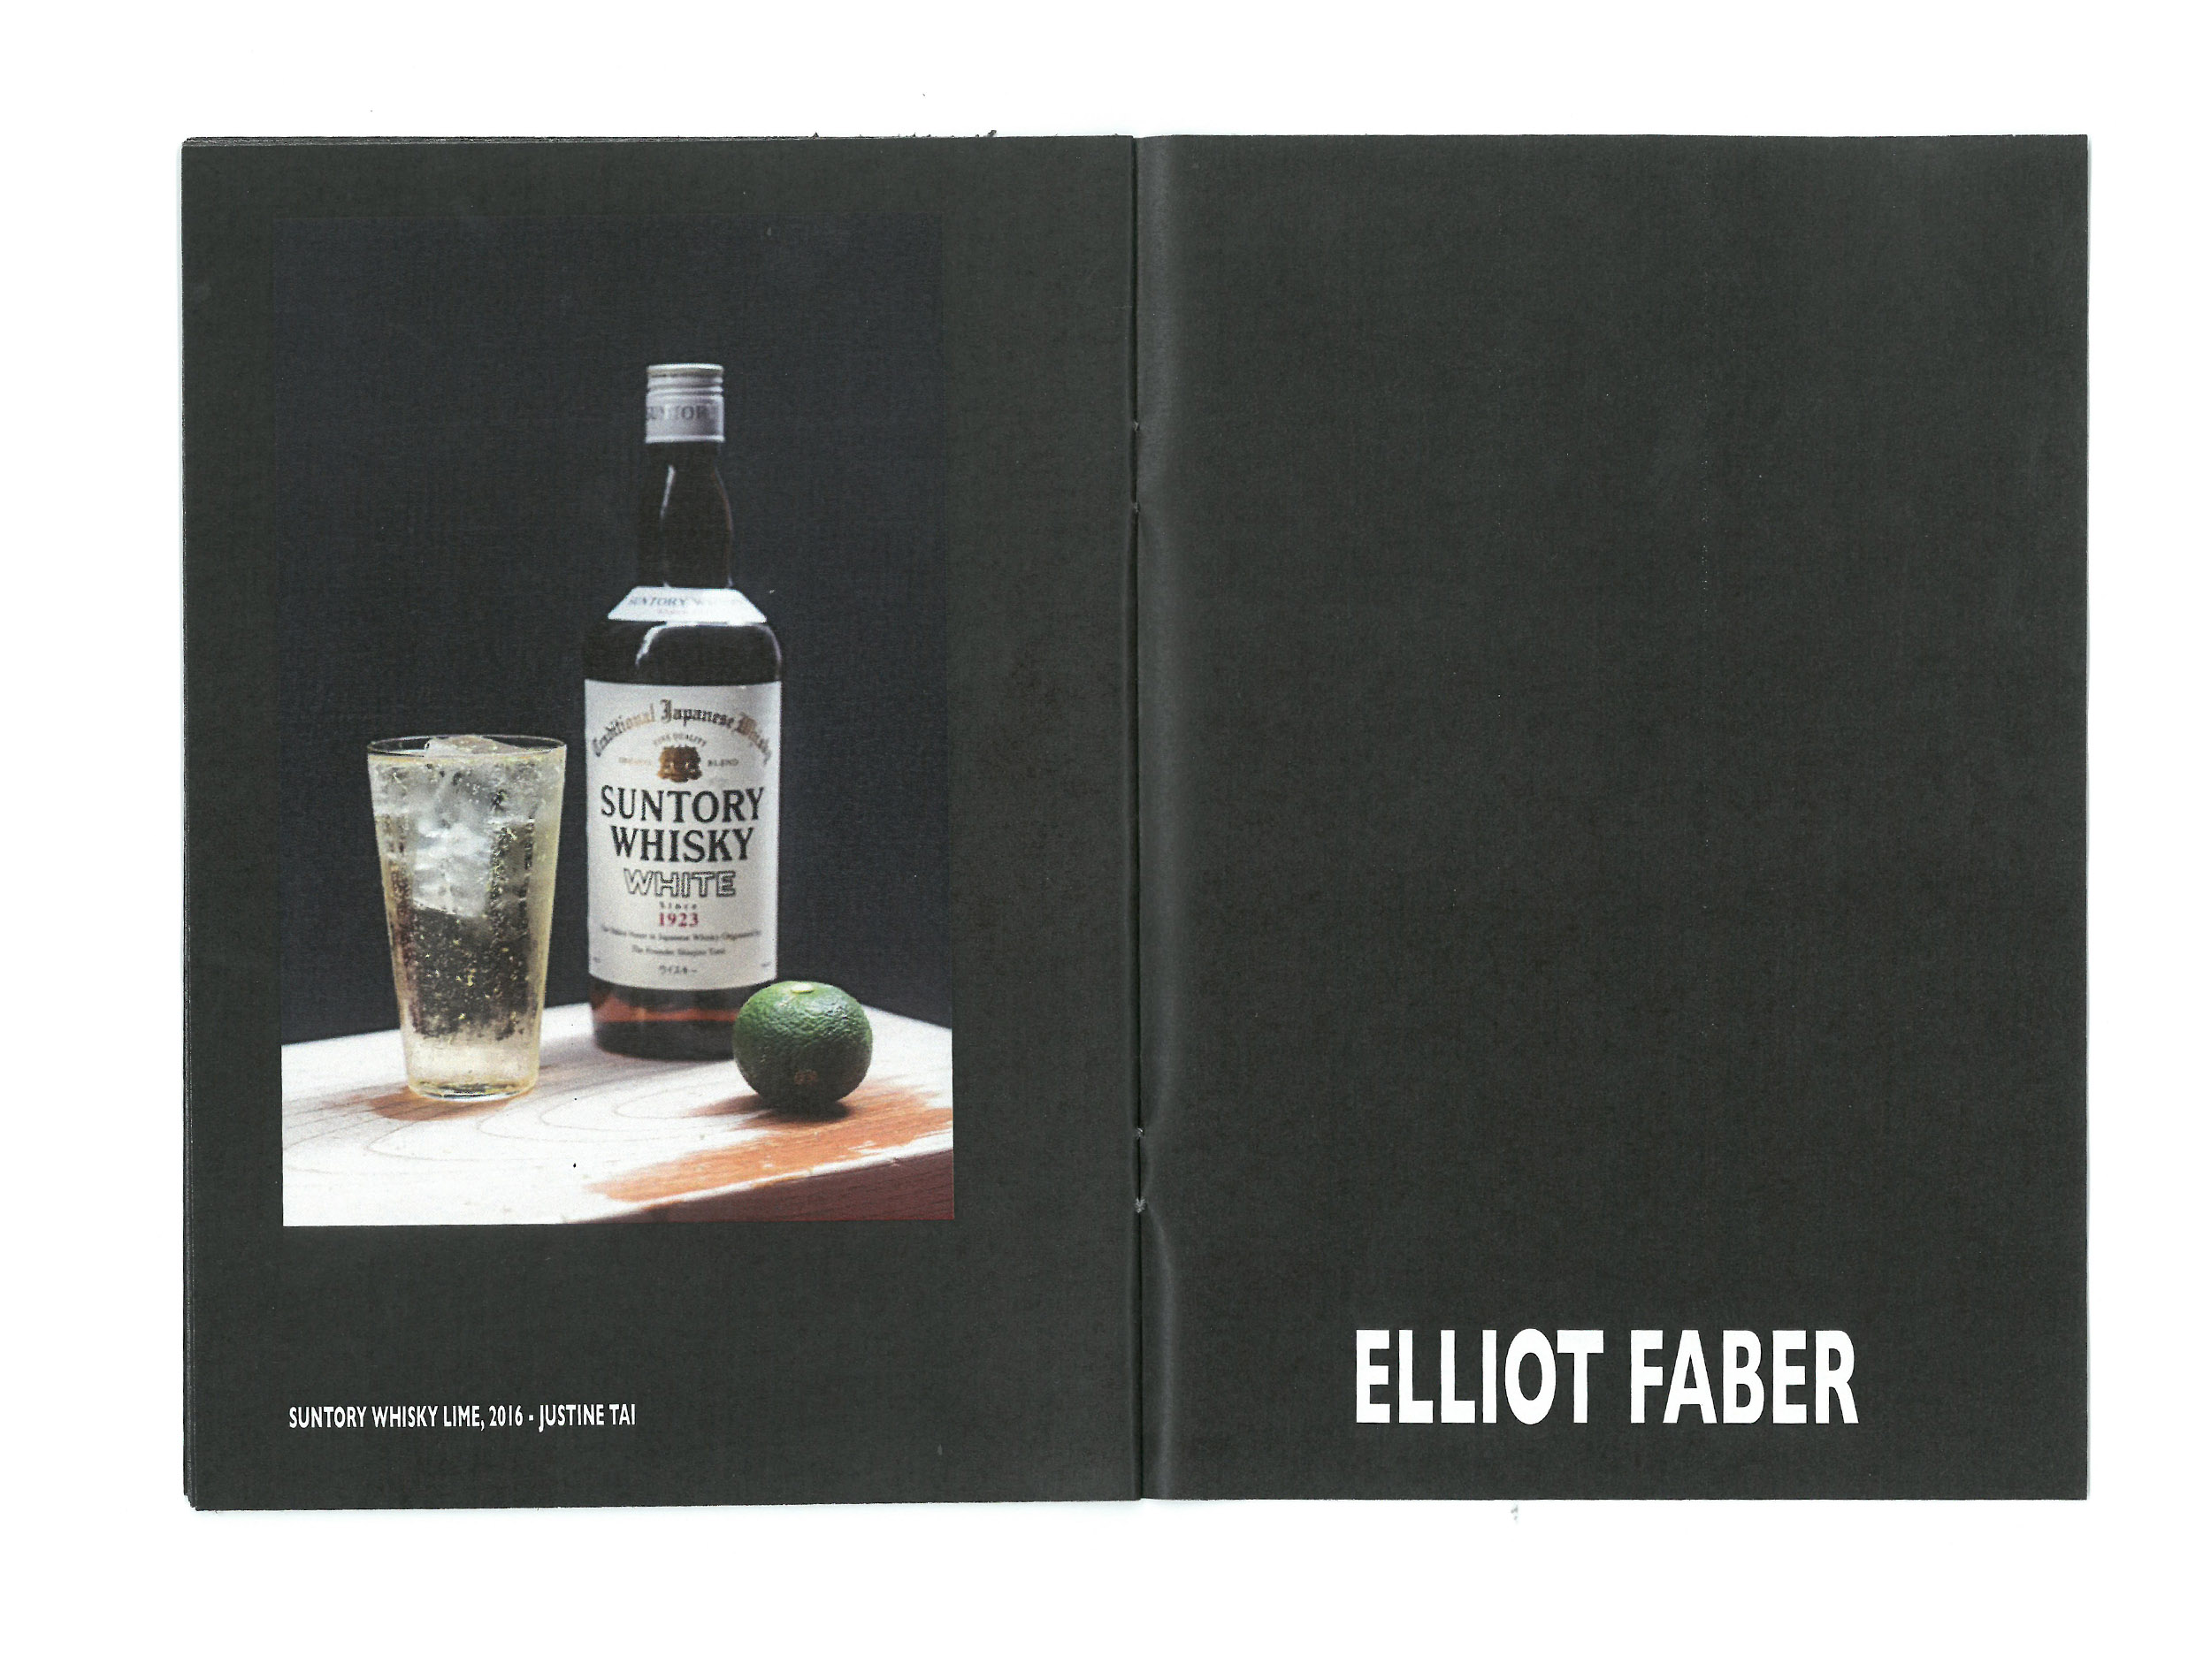 Time Zine: Santory Whisky Lime, 2016 by Elliot Faber for Desserttime